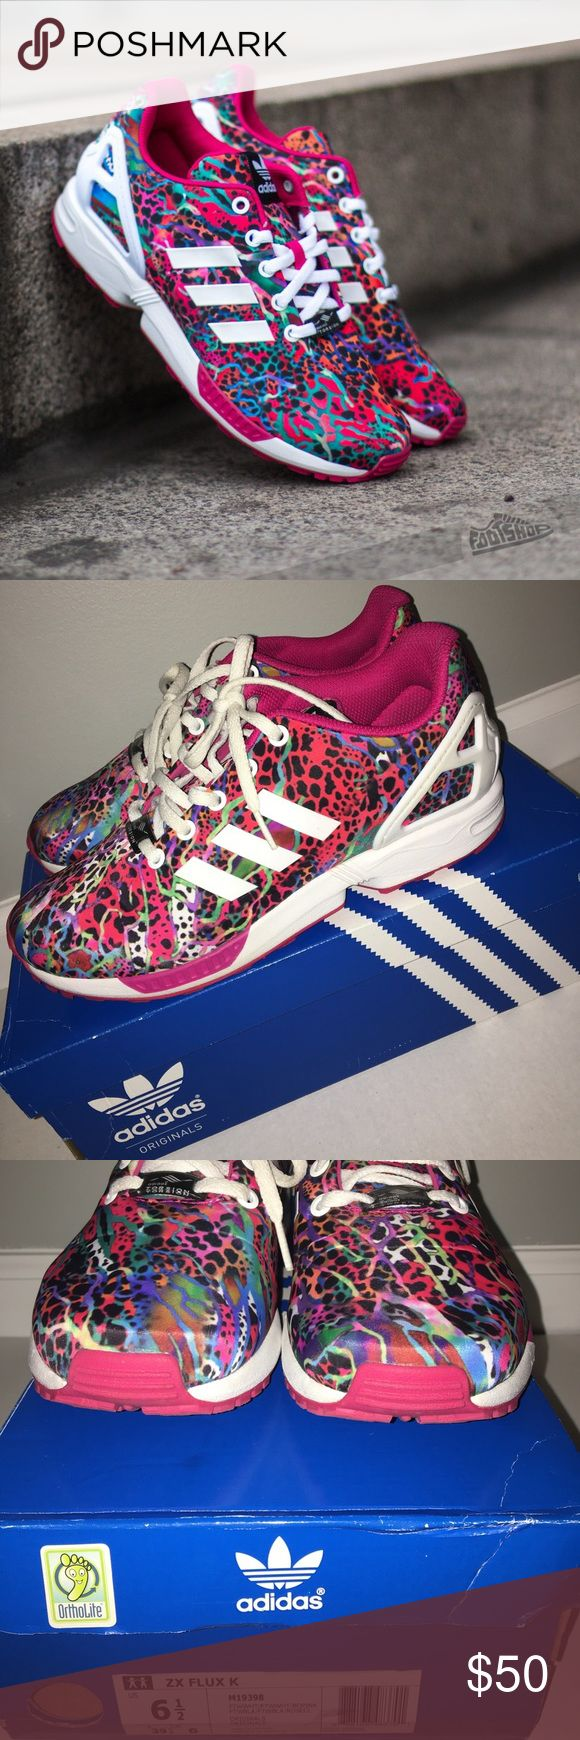 Adidas Torsion ZX Flux Shoes Adidas Shoes  *Has been worn  *Still have the original box  *Is a men's 6.5 but it will fit a women's 8 (I'm a women's 8 but can fit a men's 6.5 😊) adidas Shoes Sneakers